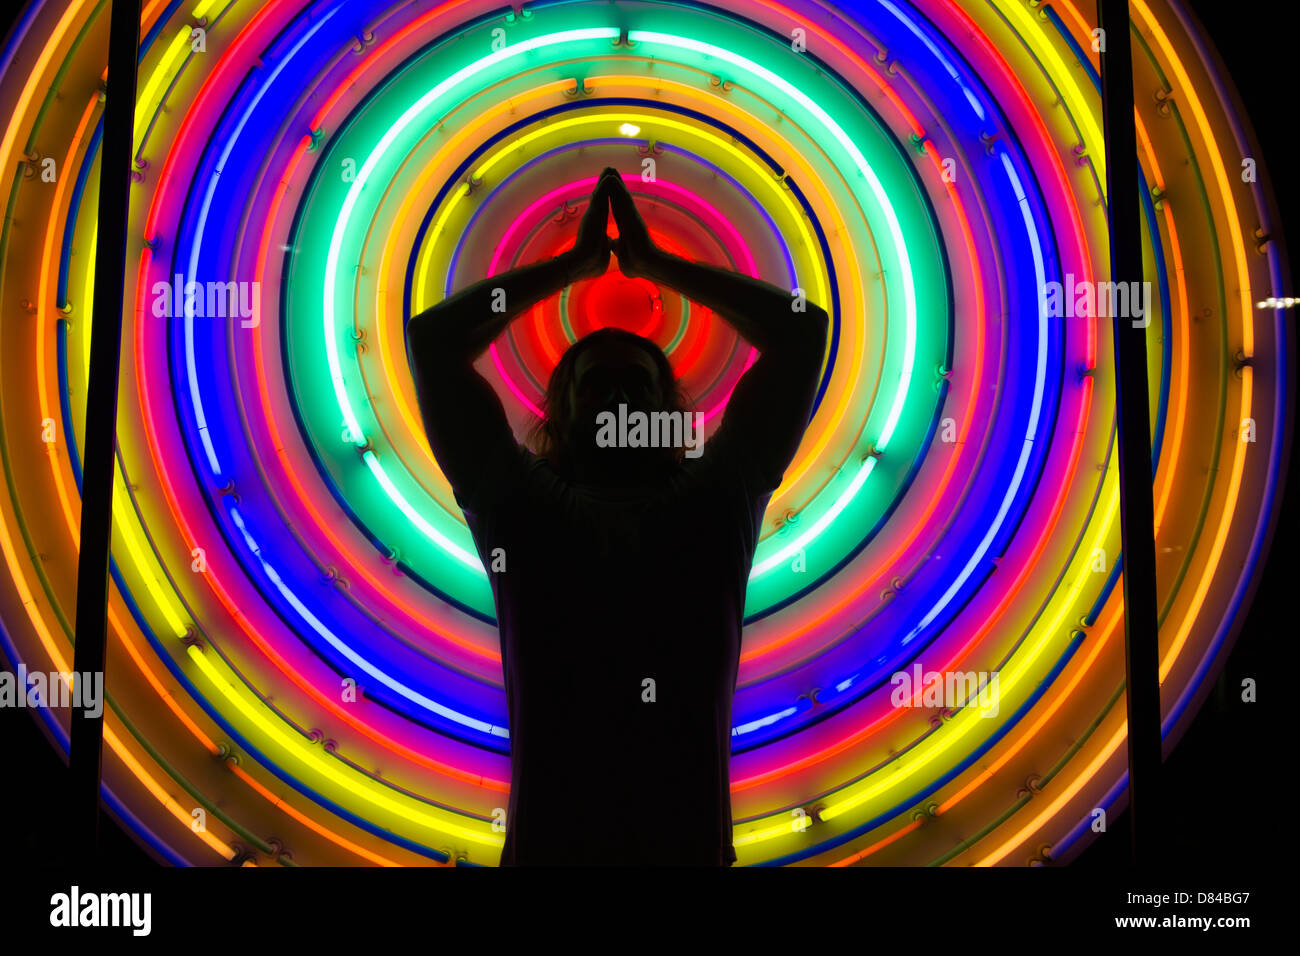 Silhouette of a man in front of neon lights - Stock Image